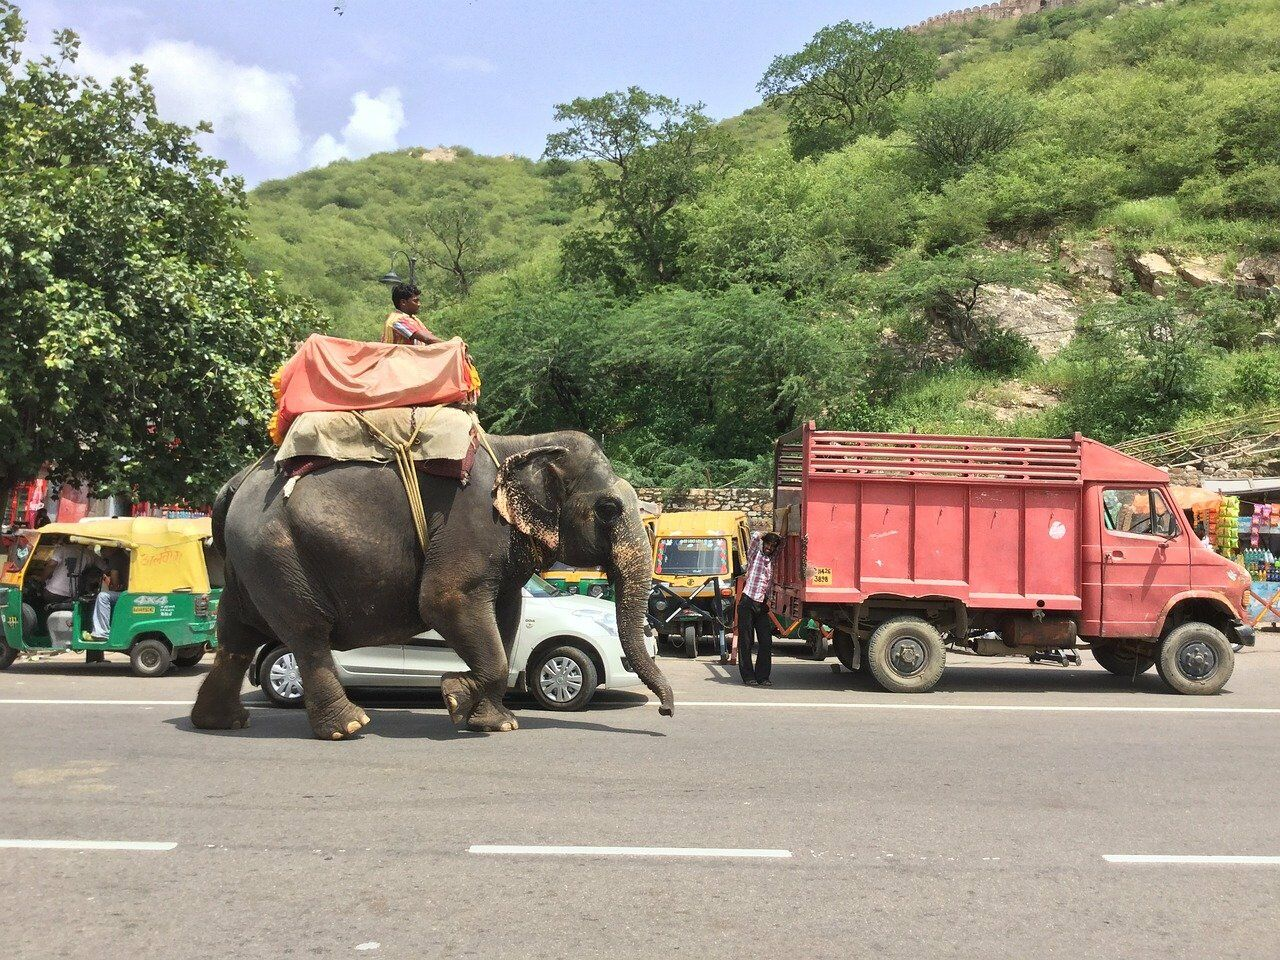 Elephants walking from Pattaya to Surin get a lift | Thaiger